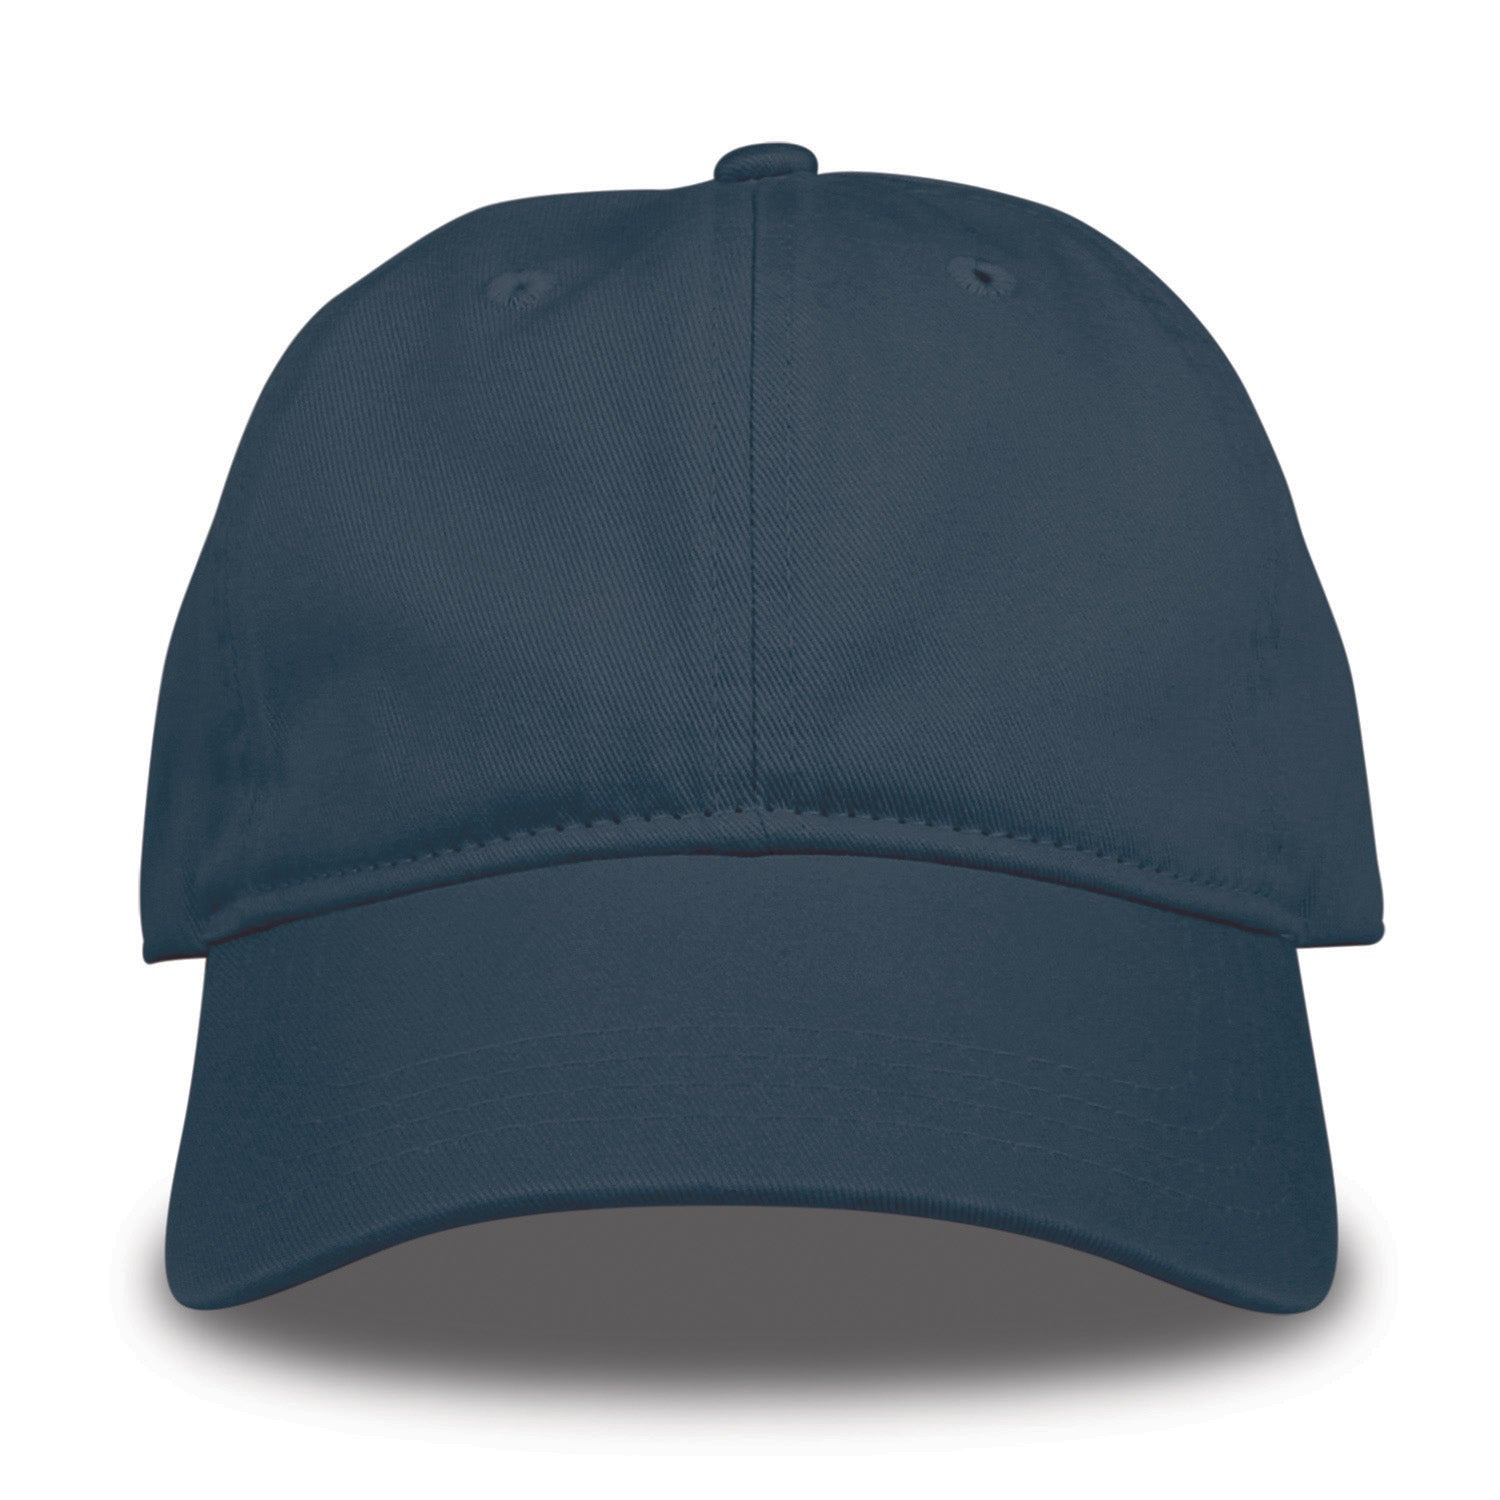 GB310 - GB310 Dad Cap